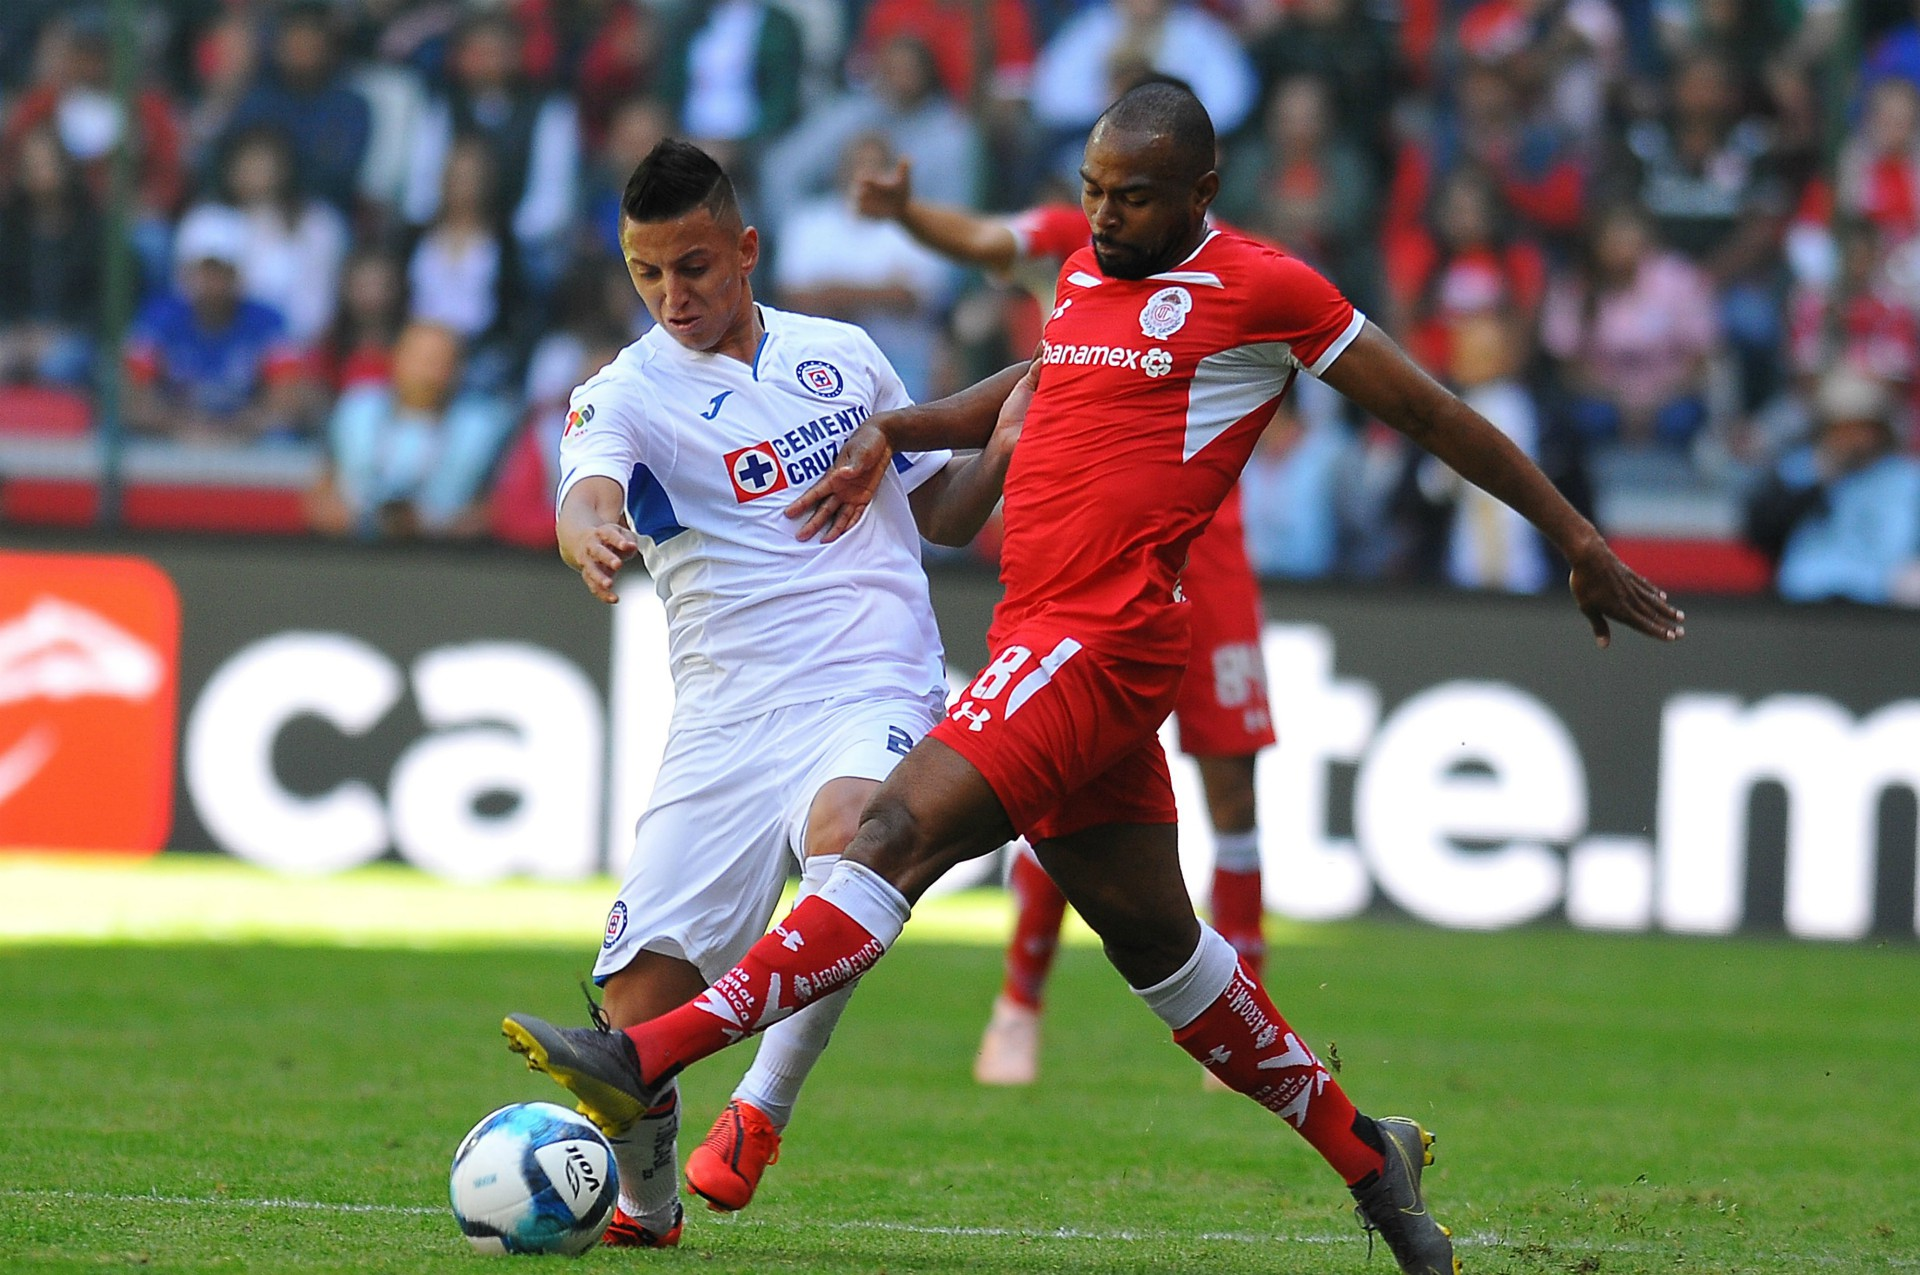 Toluca Cruz Azul Roberto Alvarado William Da Silva